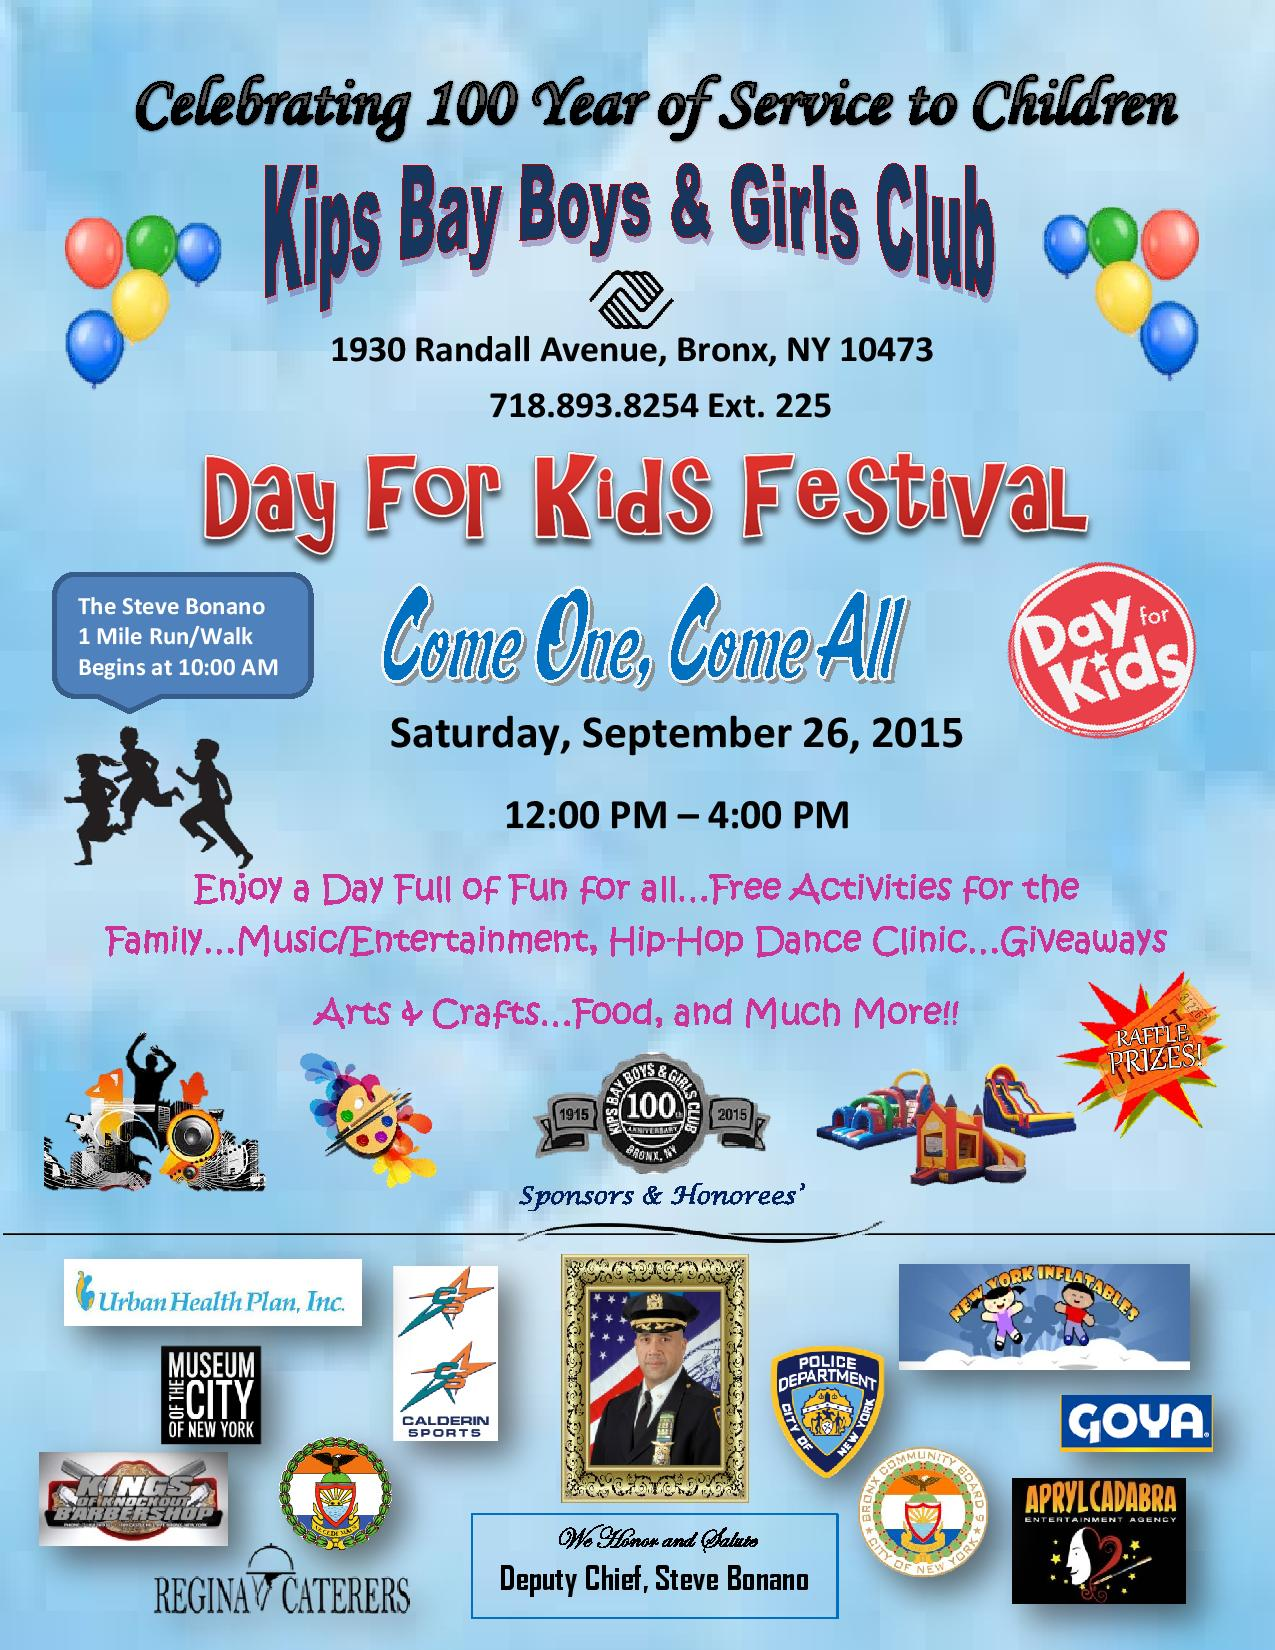 Day for Kids Festival